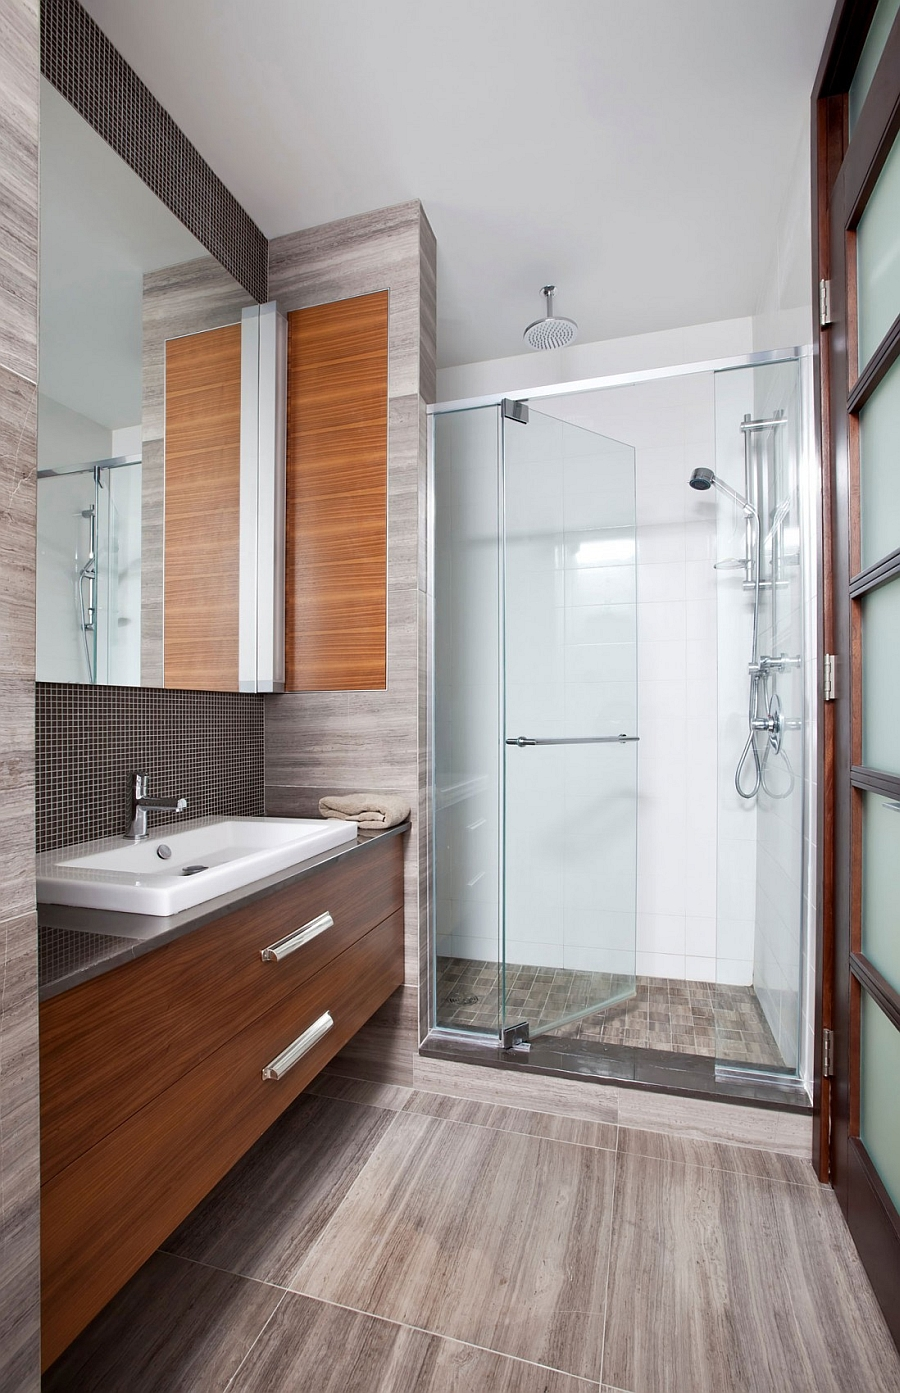 Contemporary bath with a glass shower enclosure